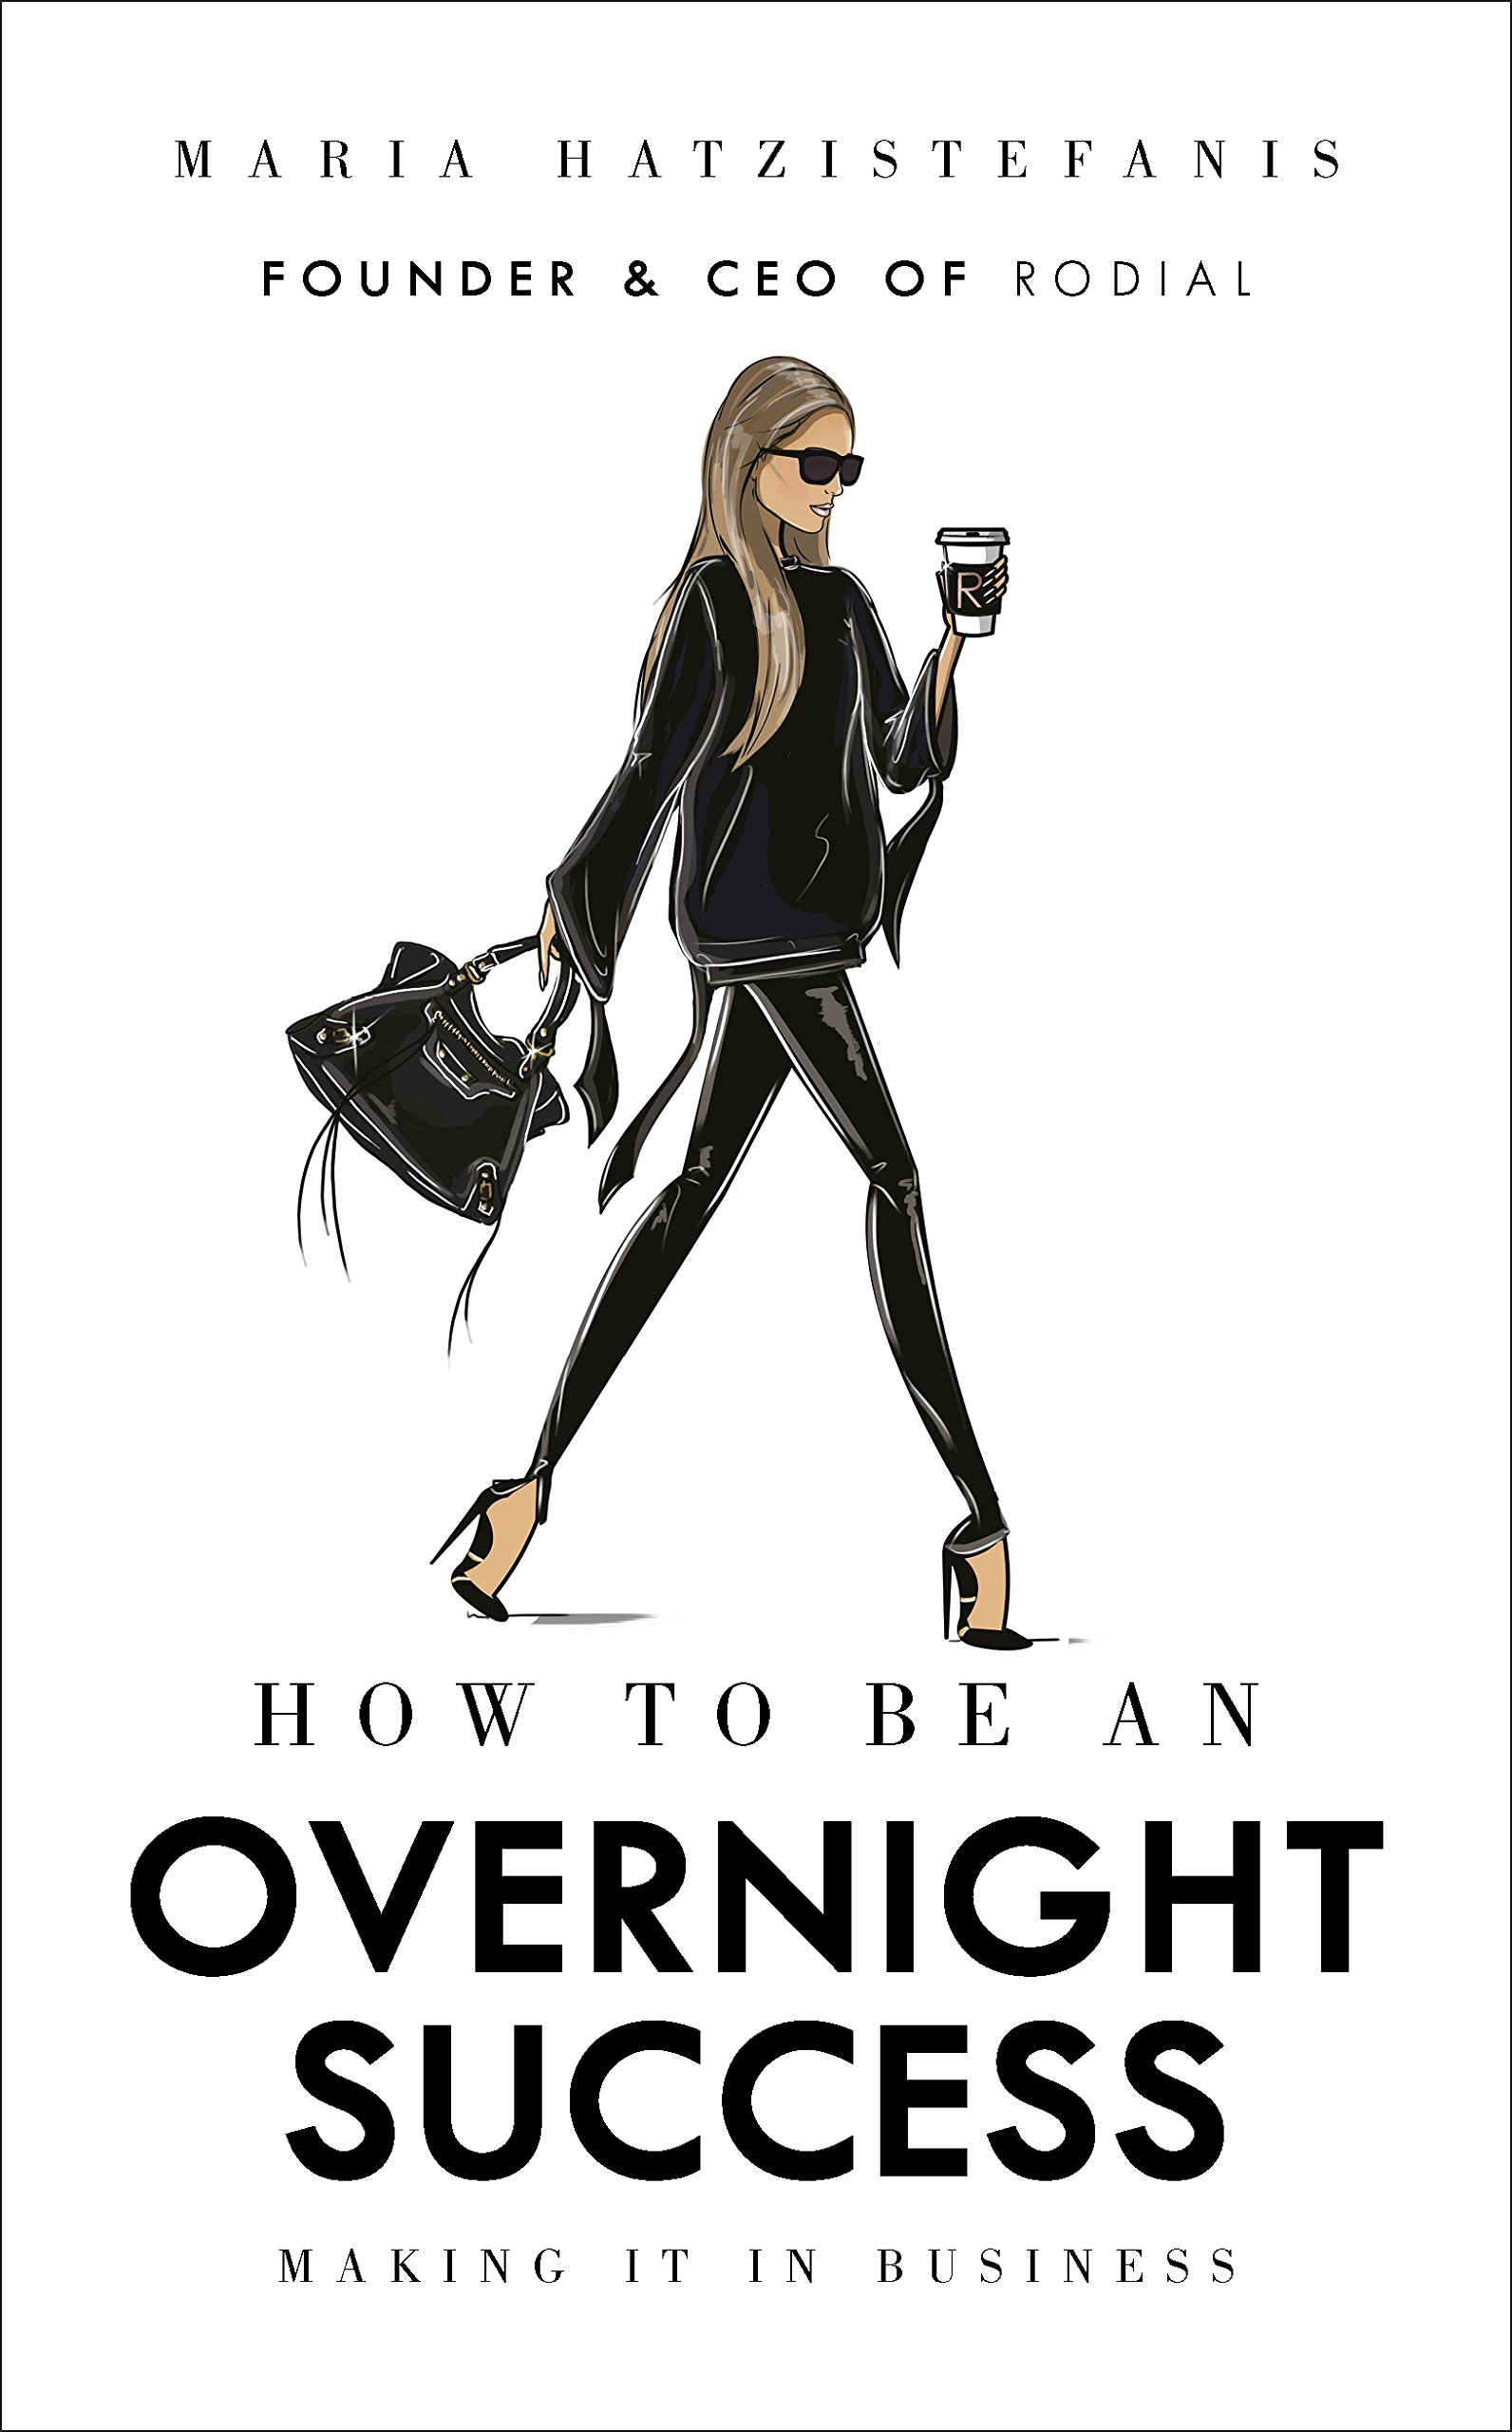 Image OfHow To Be An Overnight Success